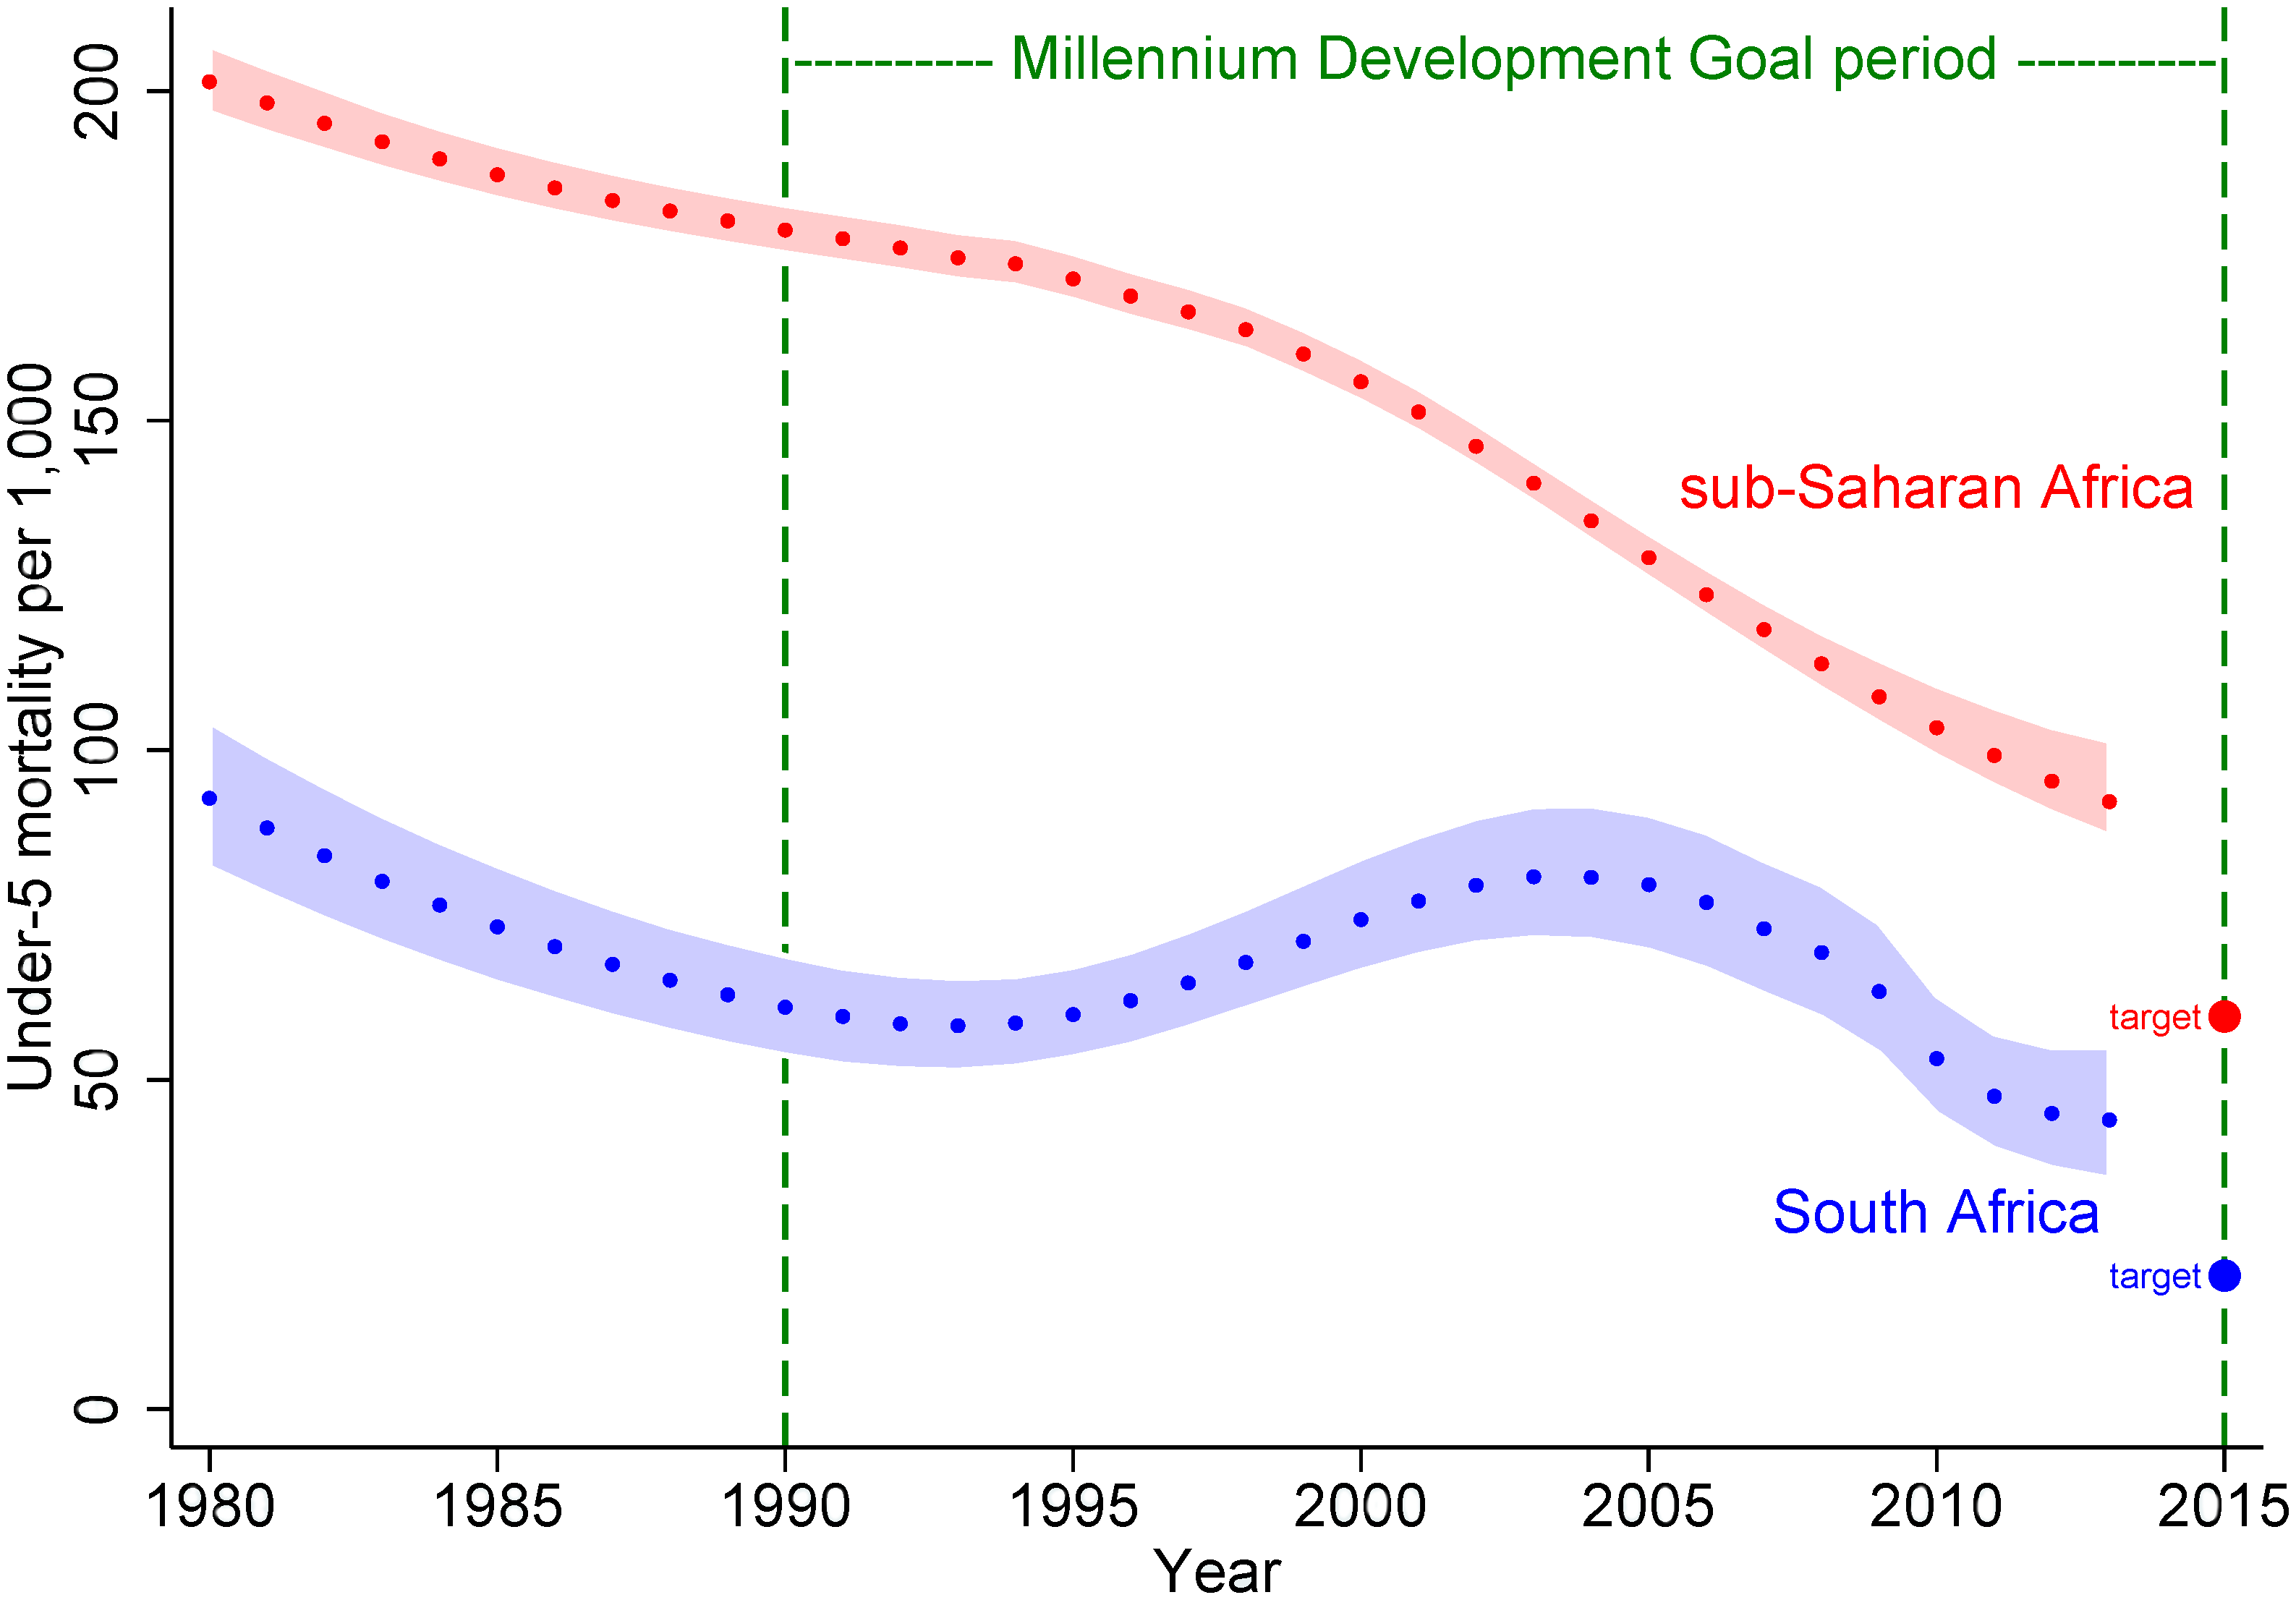 """Under-five mortality estimates (with 90% uncertainty bounds) from UNICEF [<em class=""""ref"""">4</em>] for sub-Saharan Africa and South Africa from 1980 to 2013, together with respective MDG4 target levels for 2015 (two-thirds reduction from 1990)."""